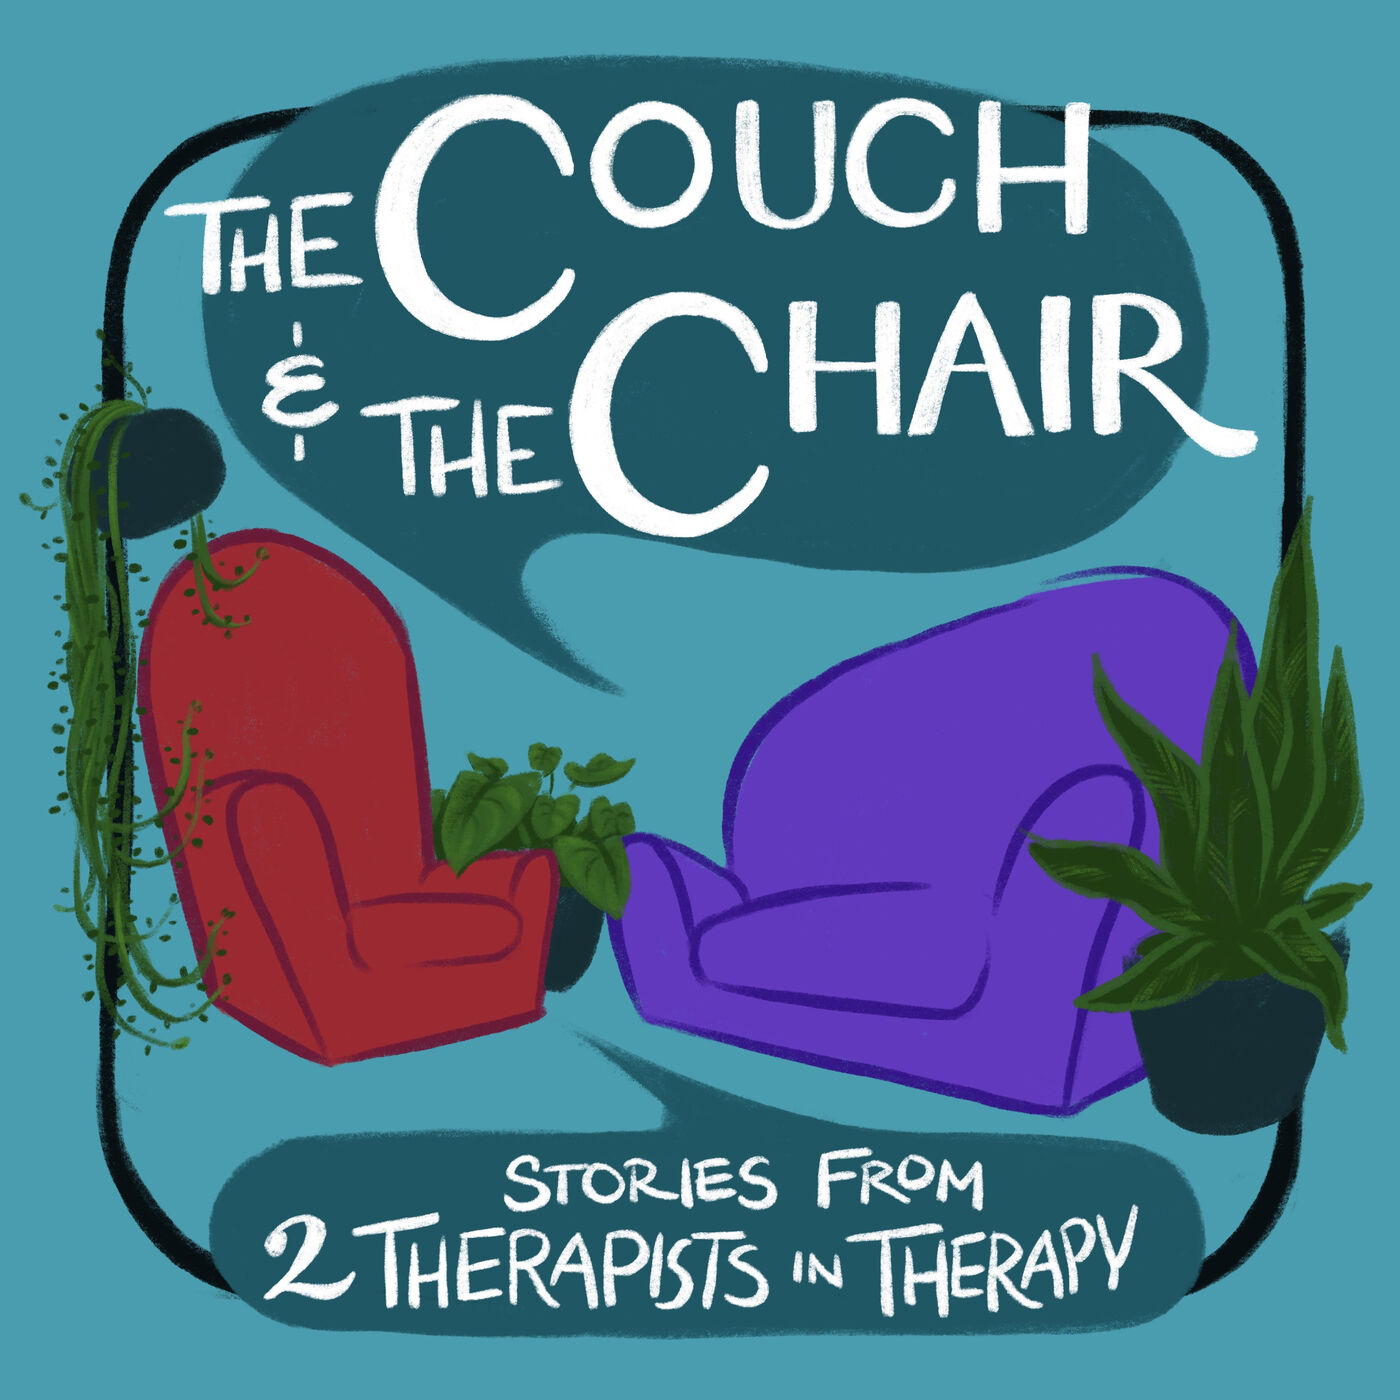 The Couch and The Chair Episode 2: Depression - Take Pleasure in the Small Things